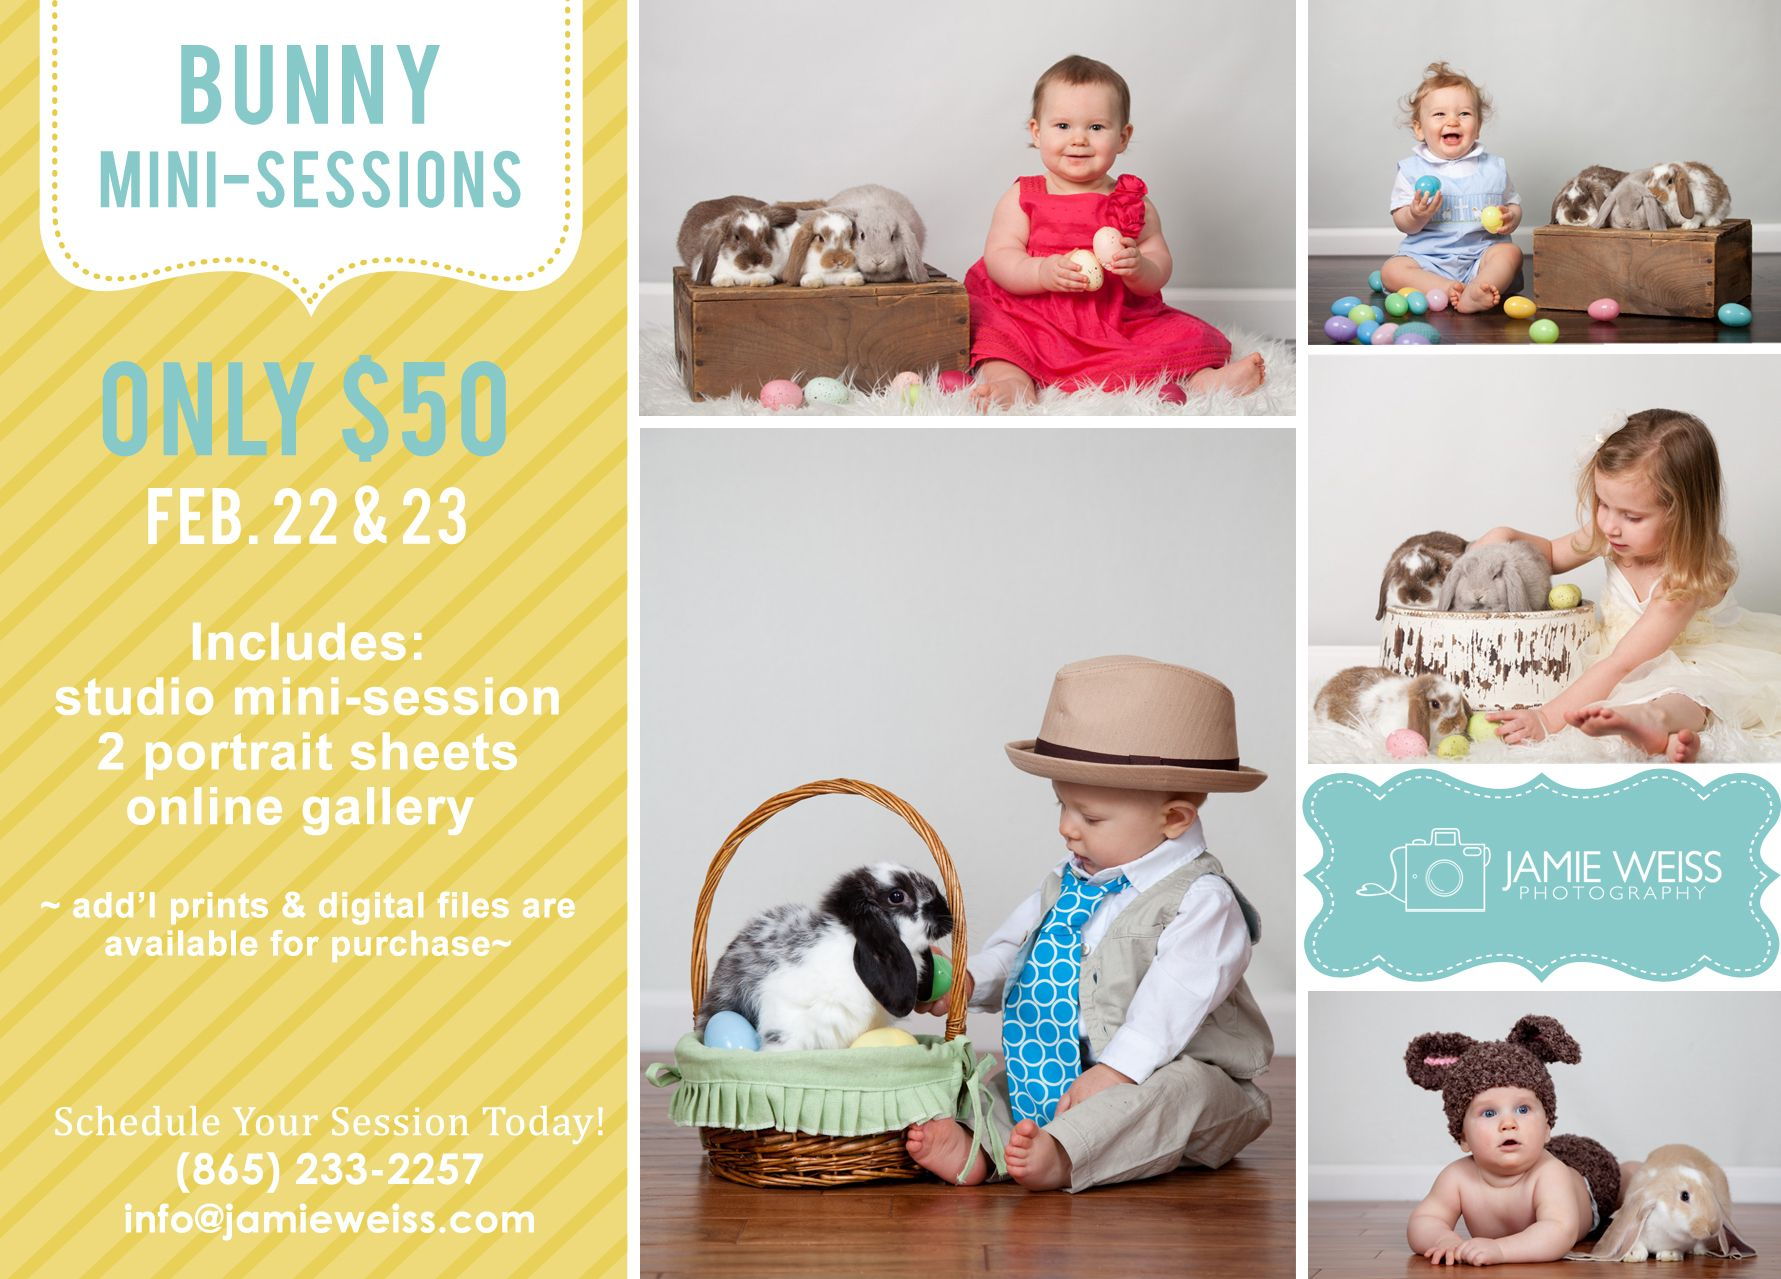 1000+ images about Easter Photo Ideas on Pinterest   Image search ...